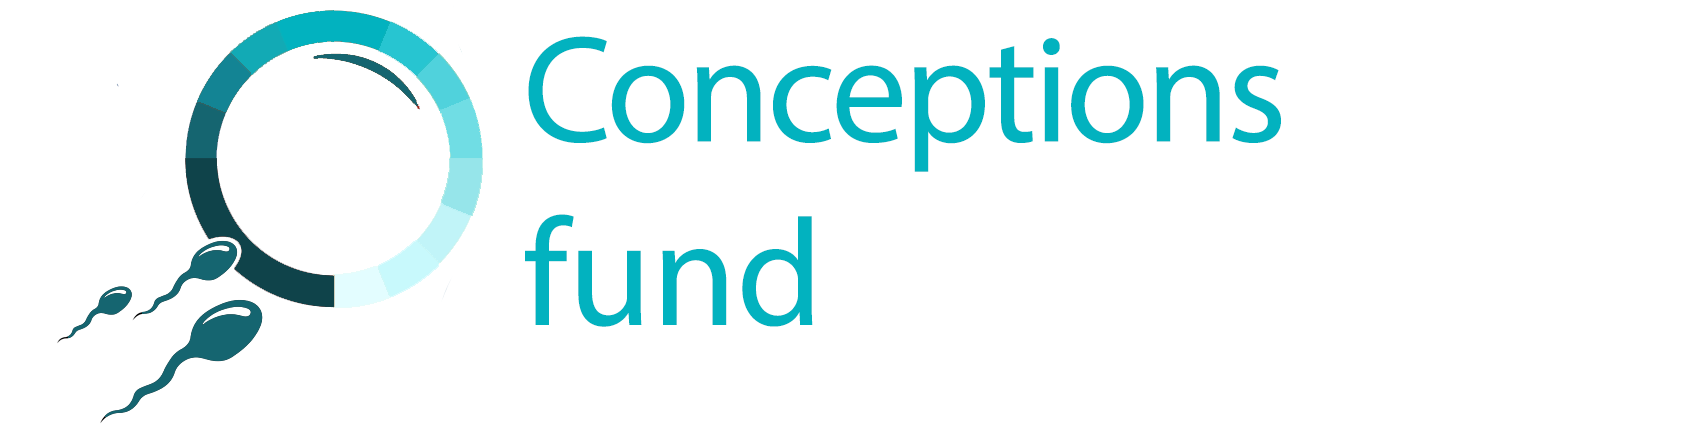 Conceptions fund logo